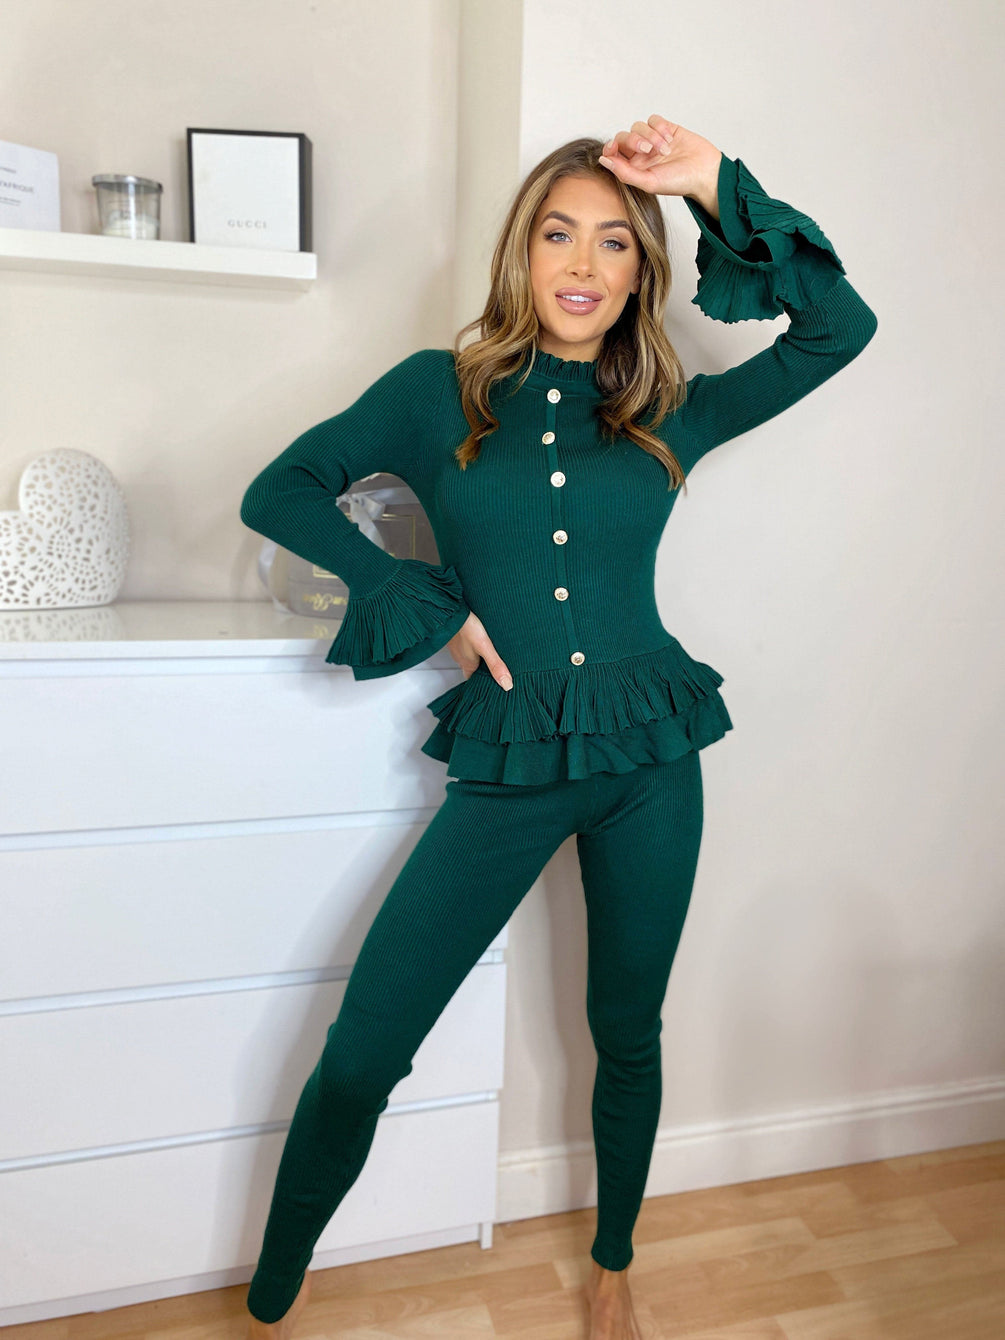 Maryam Knitted Frill Top & Legging Set in Dark Green Loungewear Sets Miss Diva Dark Green One Size